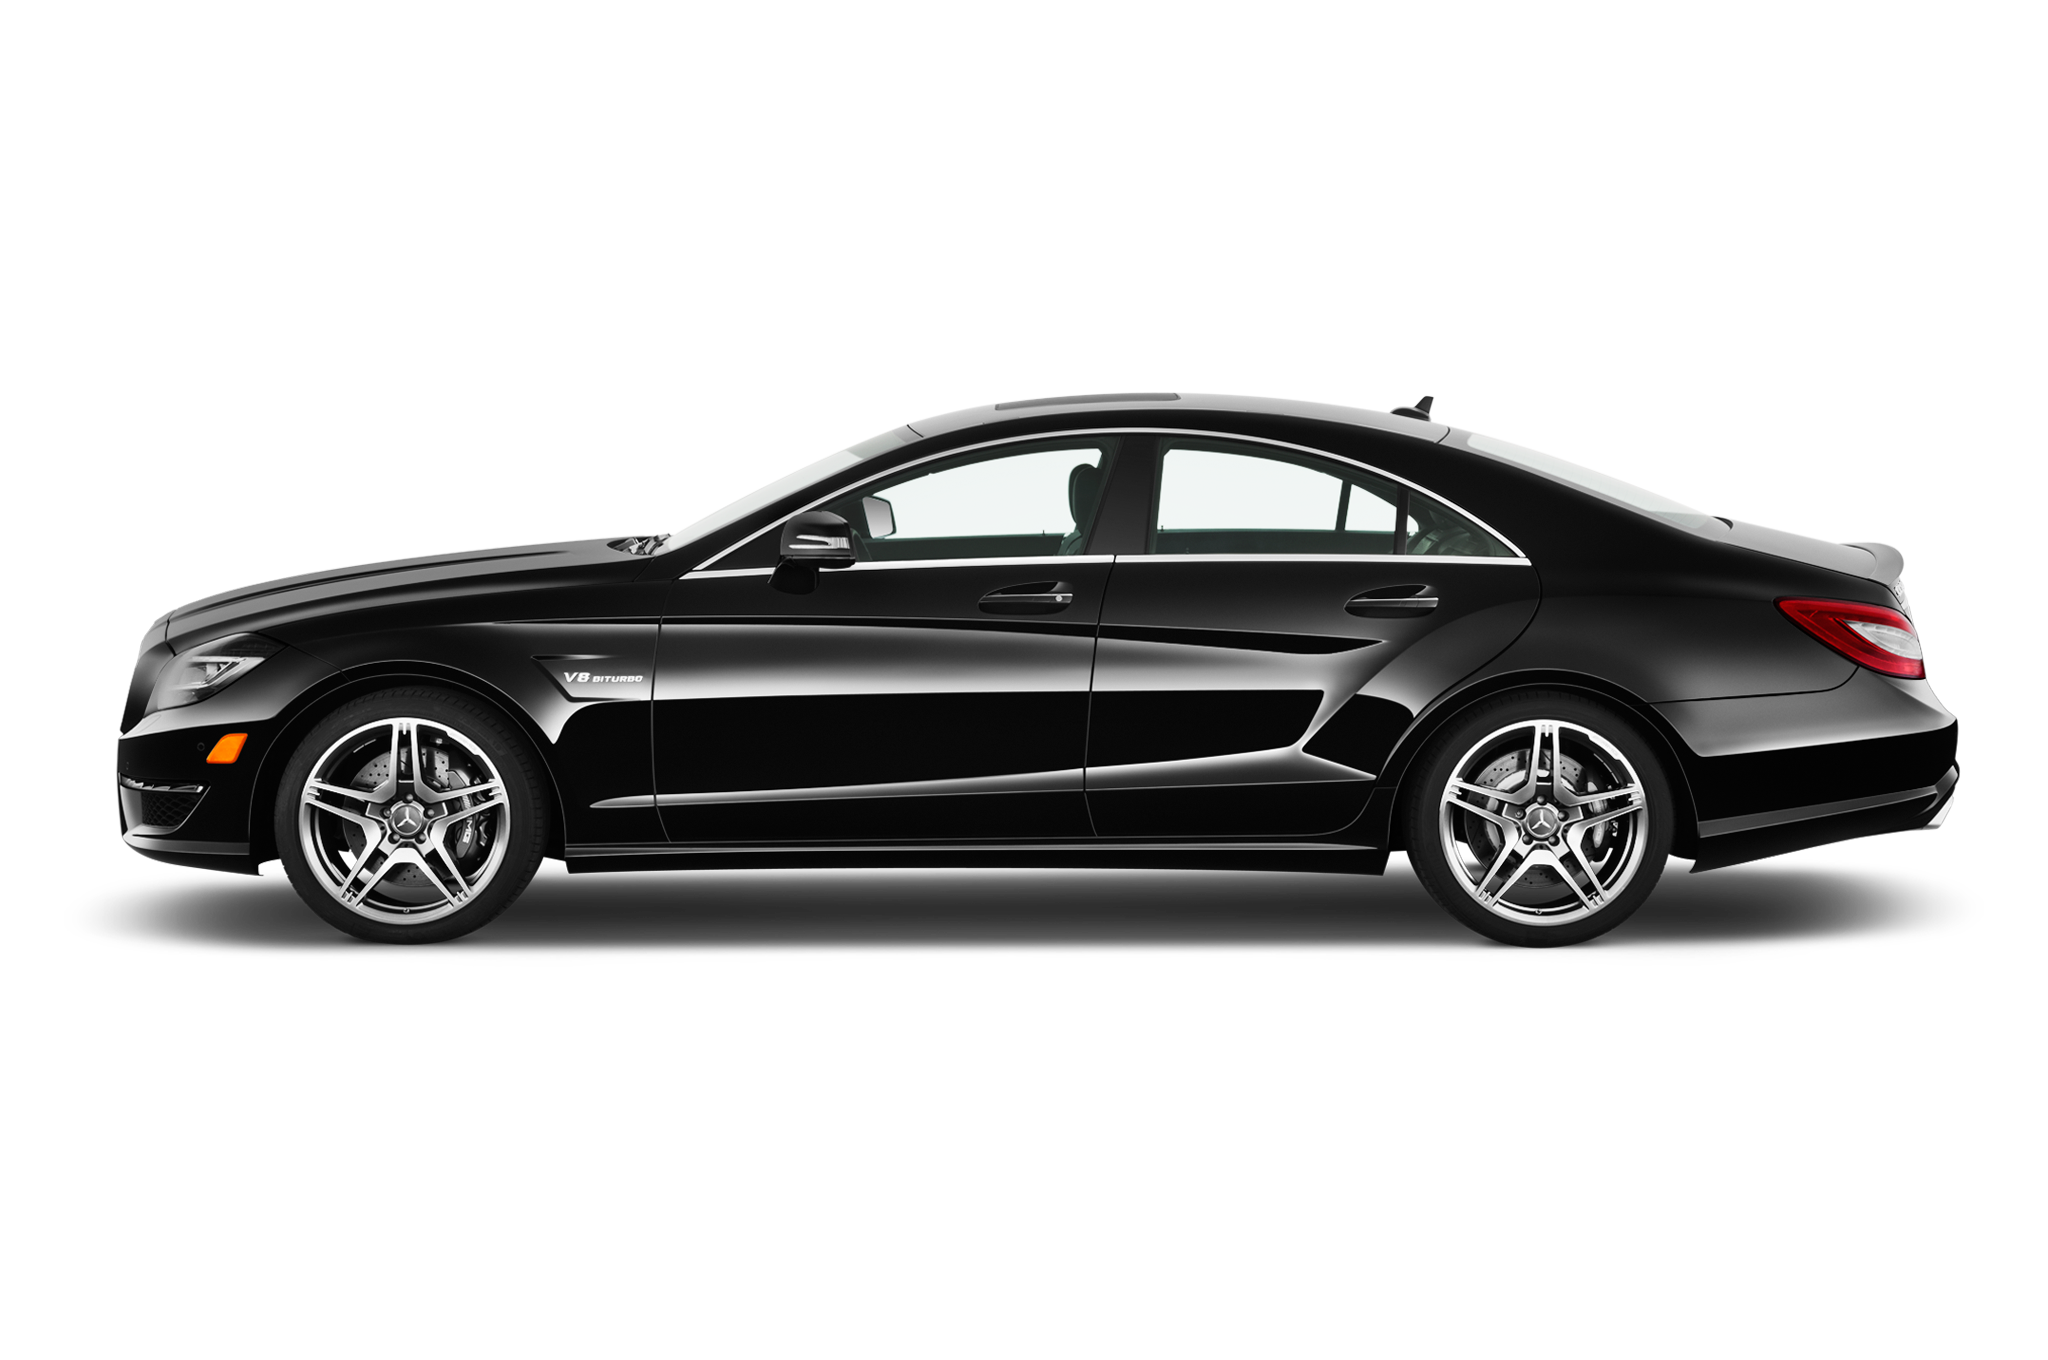 2015 mercedes benz cls class facelift spied automobile. Black Bedroom Furniture Sets. Home Design Ideas